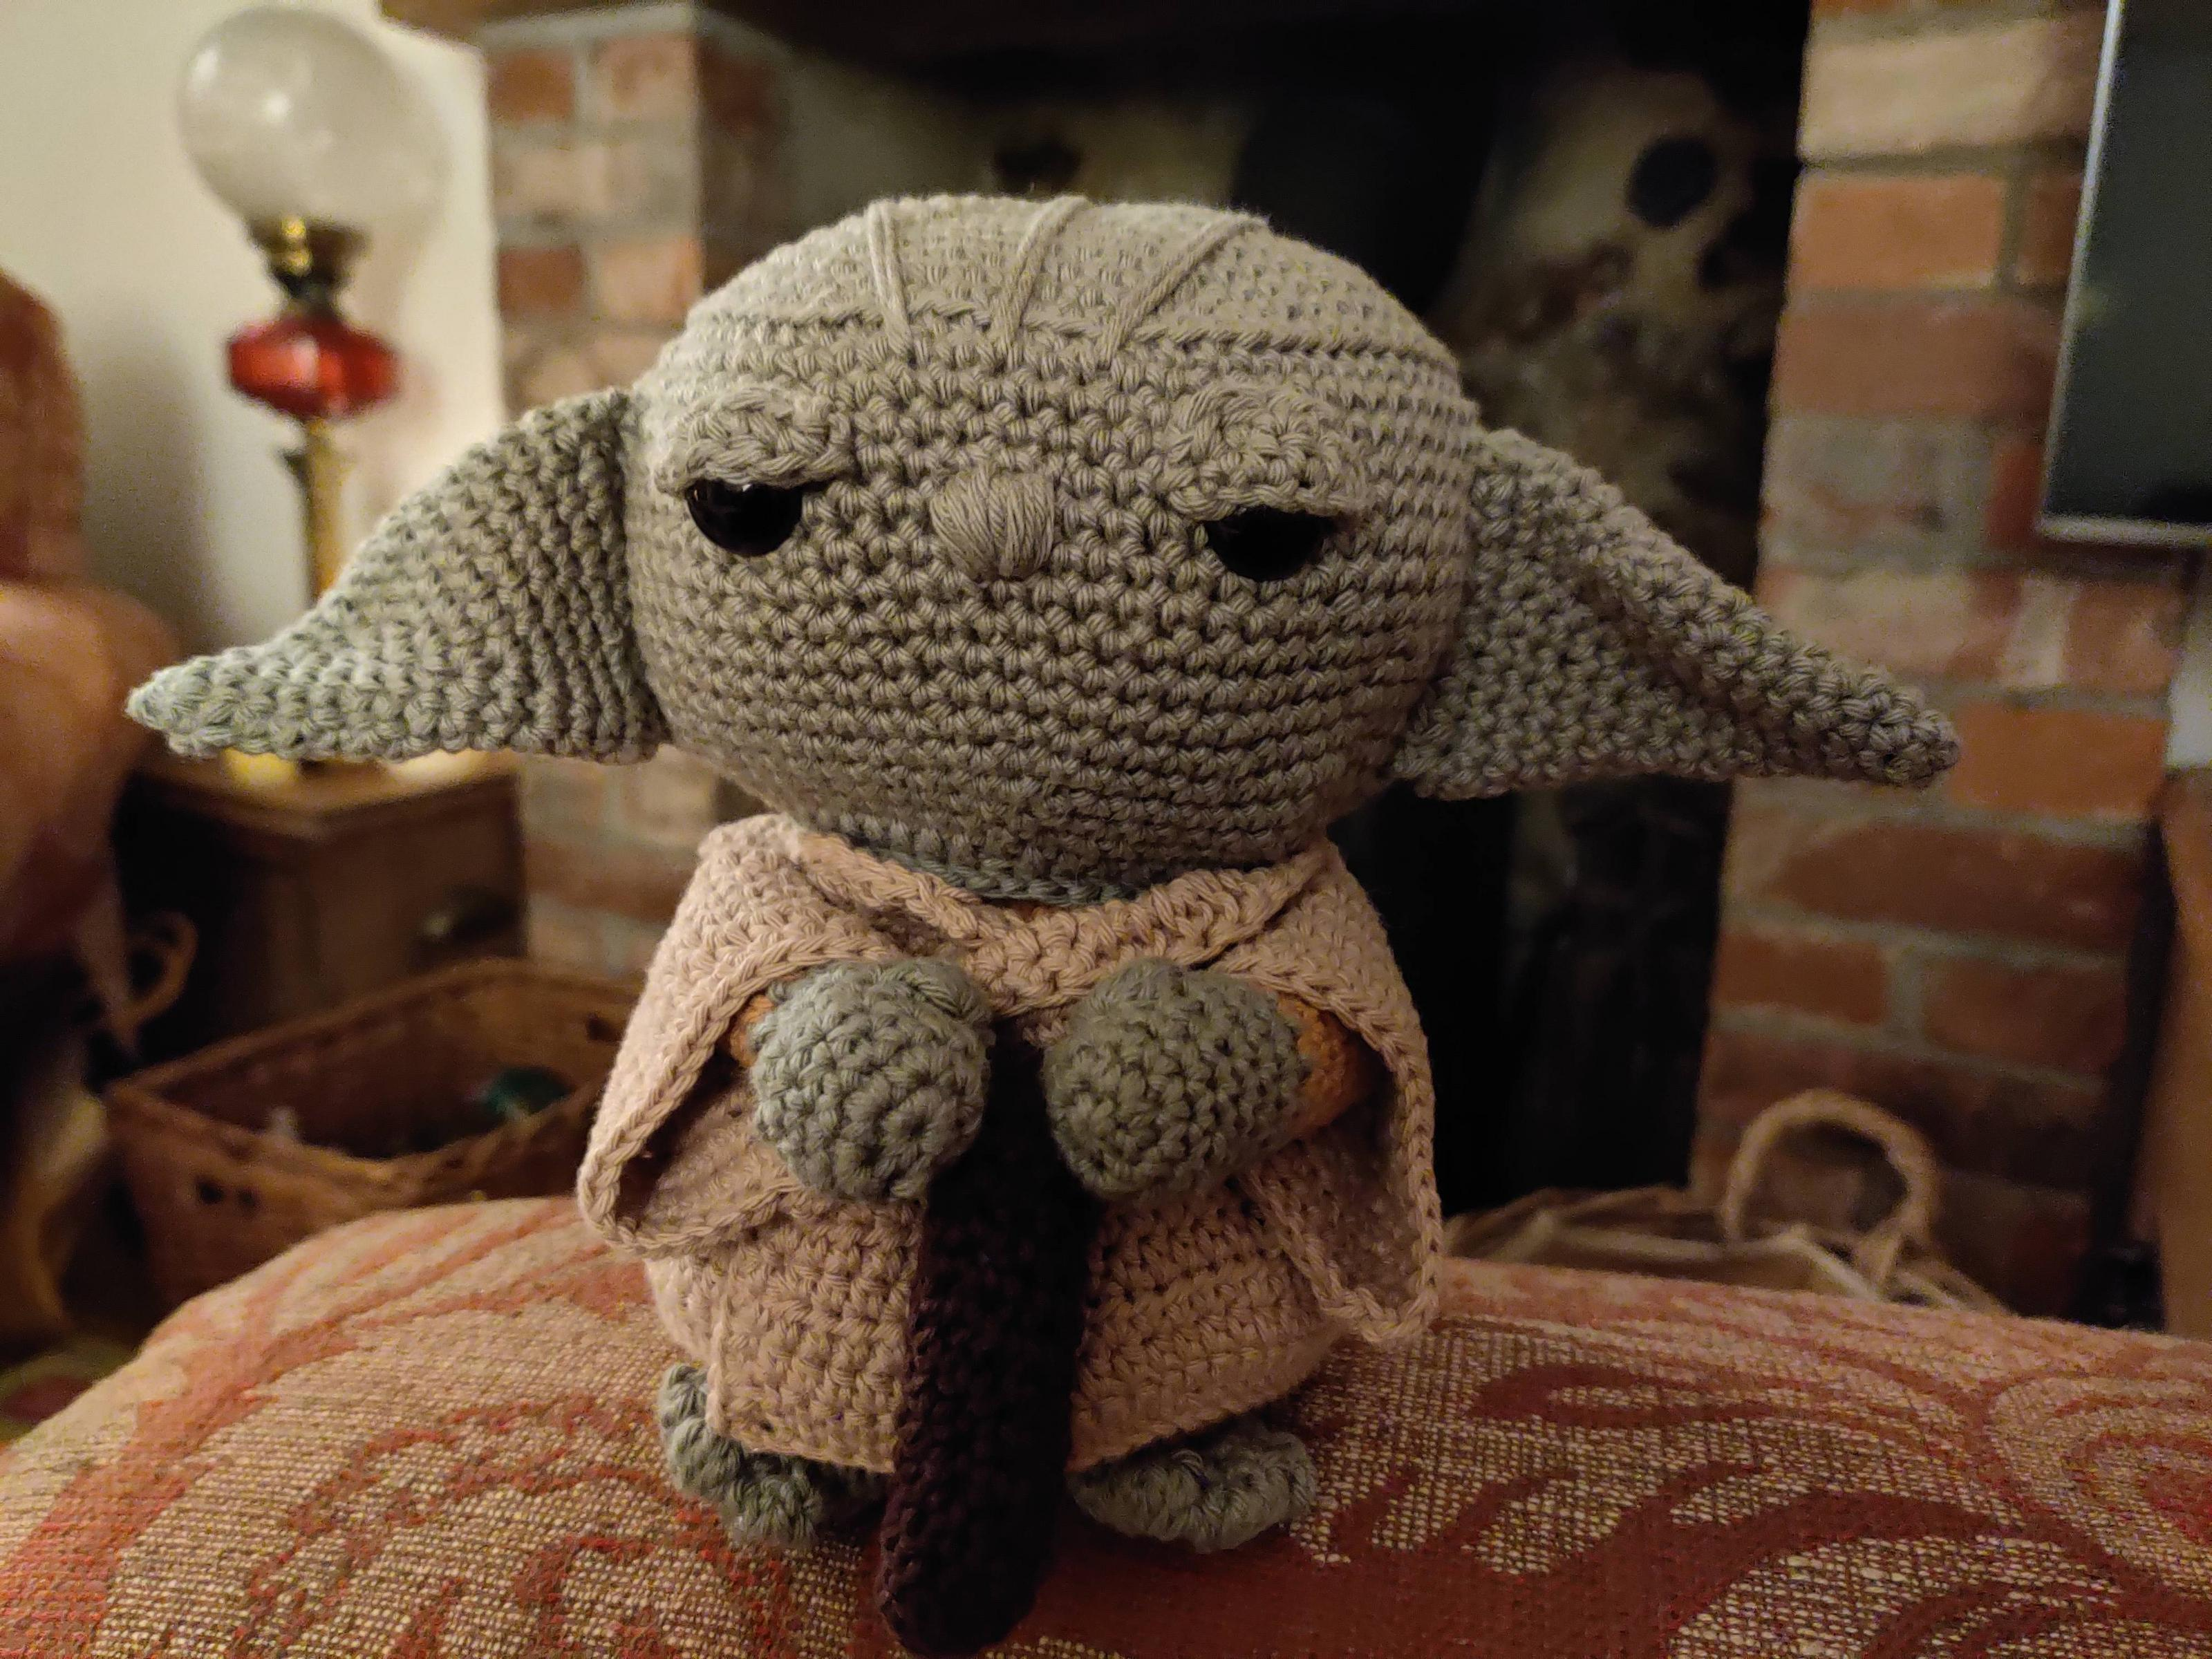 My wife crocheted me Yoda for Christmas, it\'s amazing and I love it!